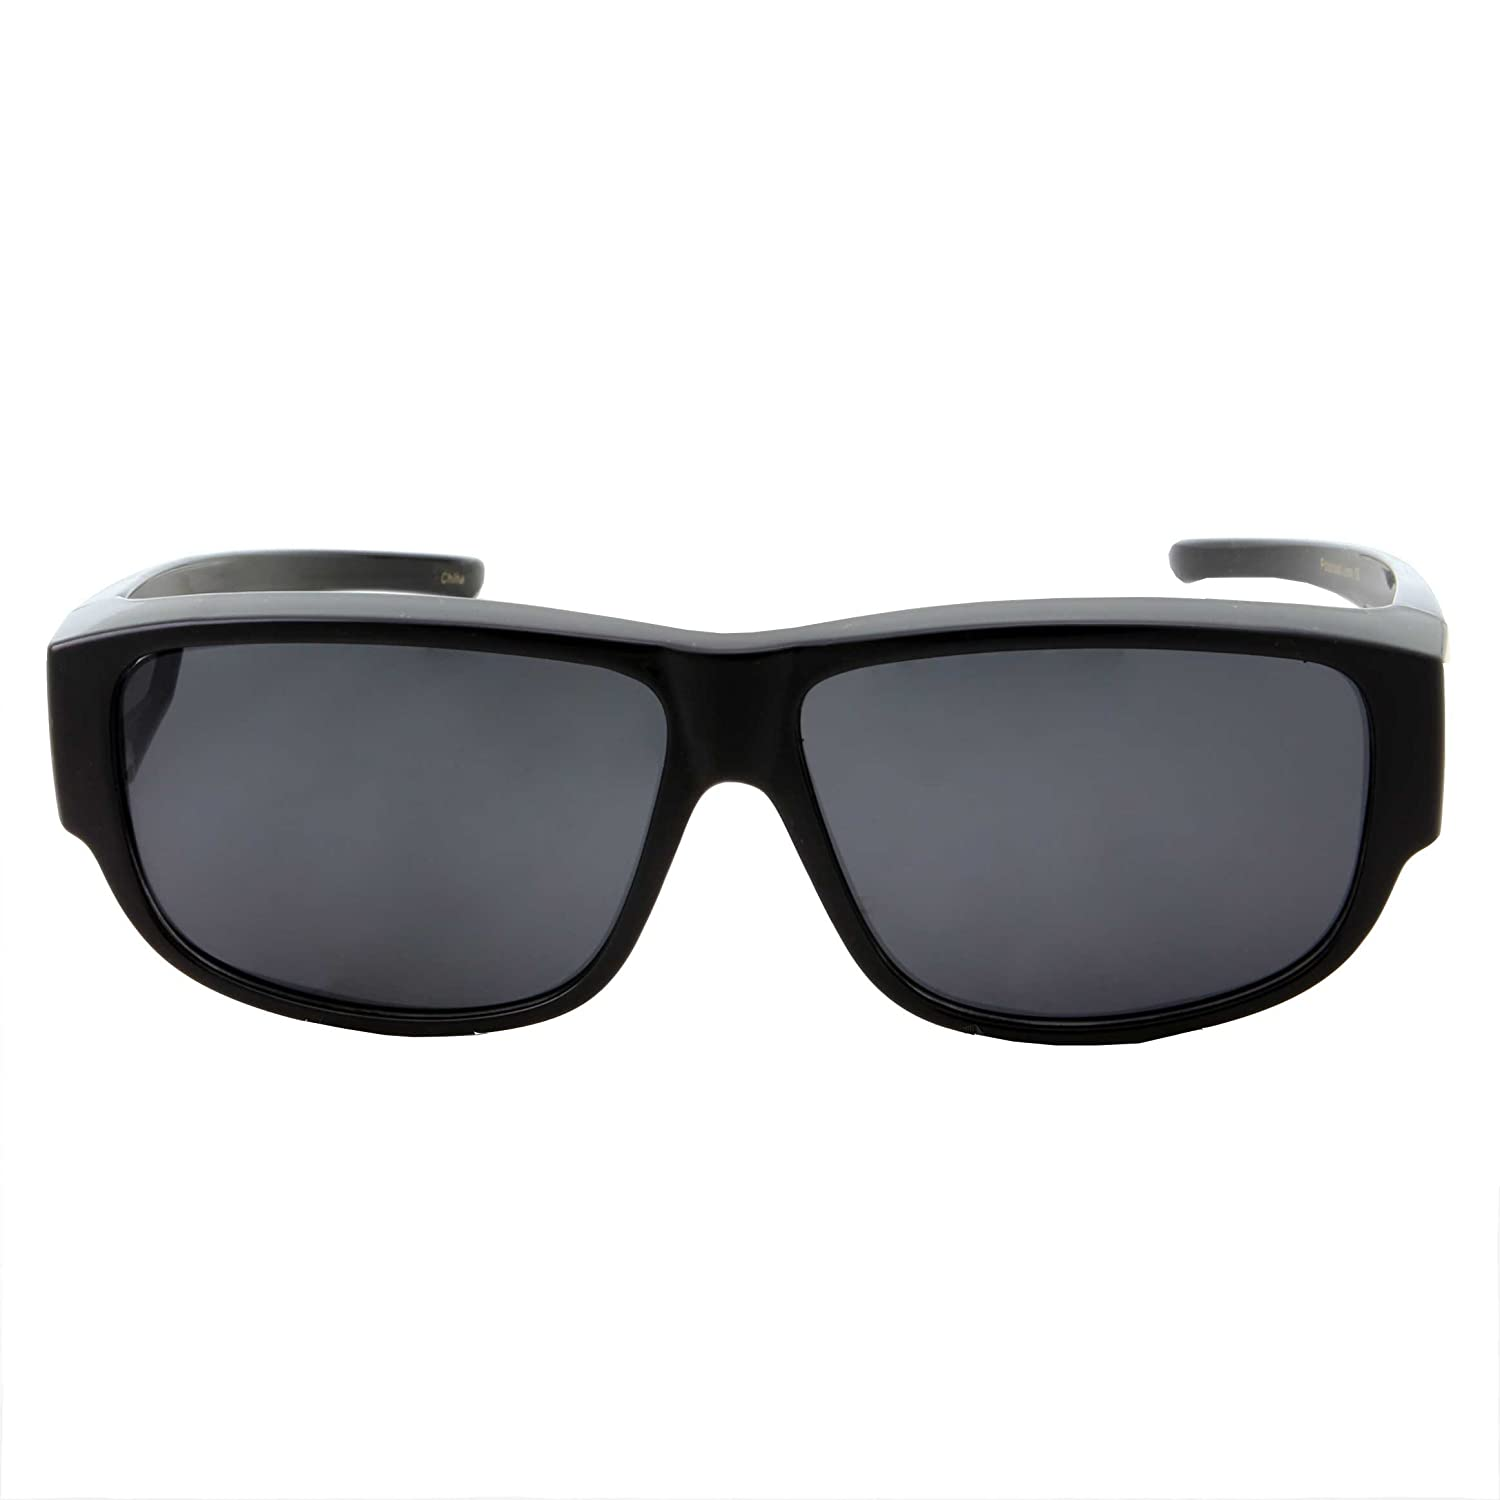 63b02d4a31103 Amazon.com  Women Polarized Fit Over Sunglasses - Less Bulky